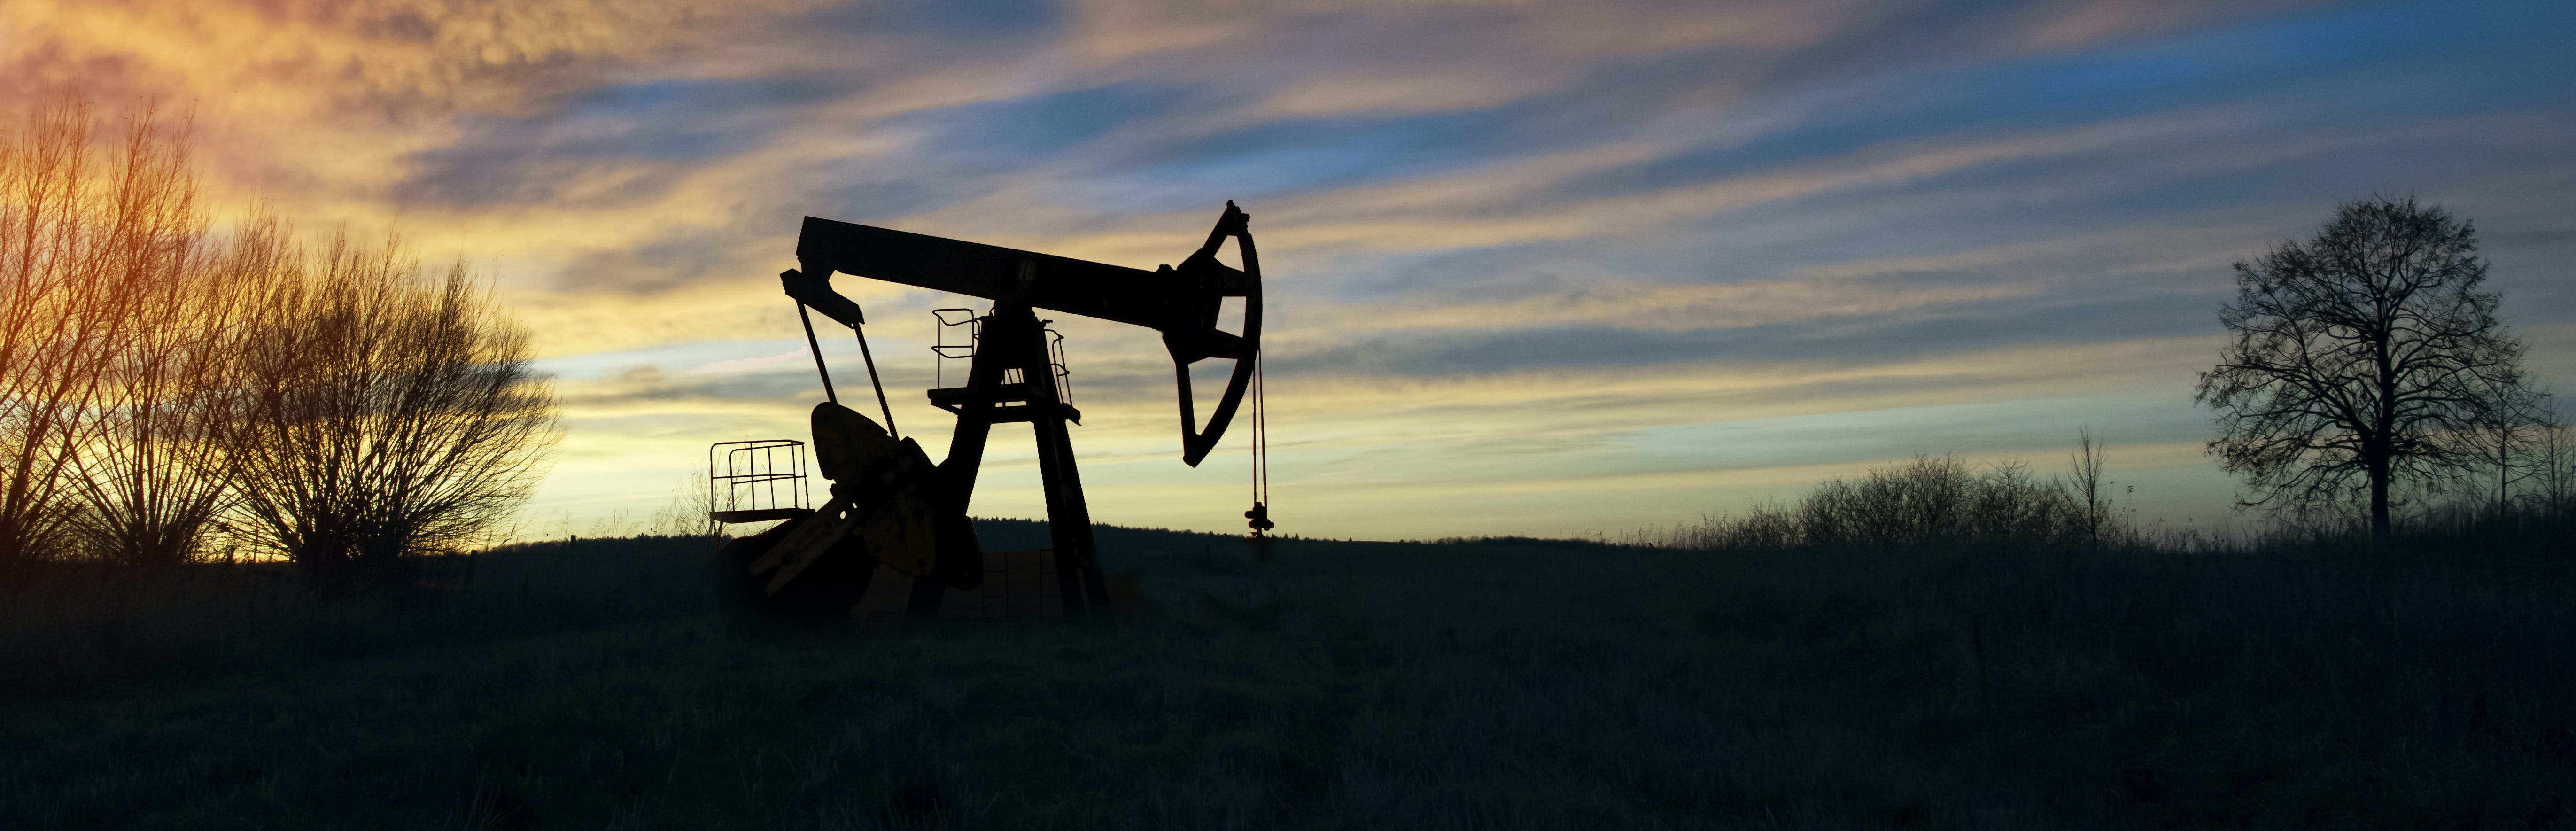 oil well drilling sunset fossil fuel